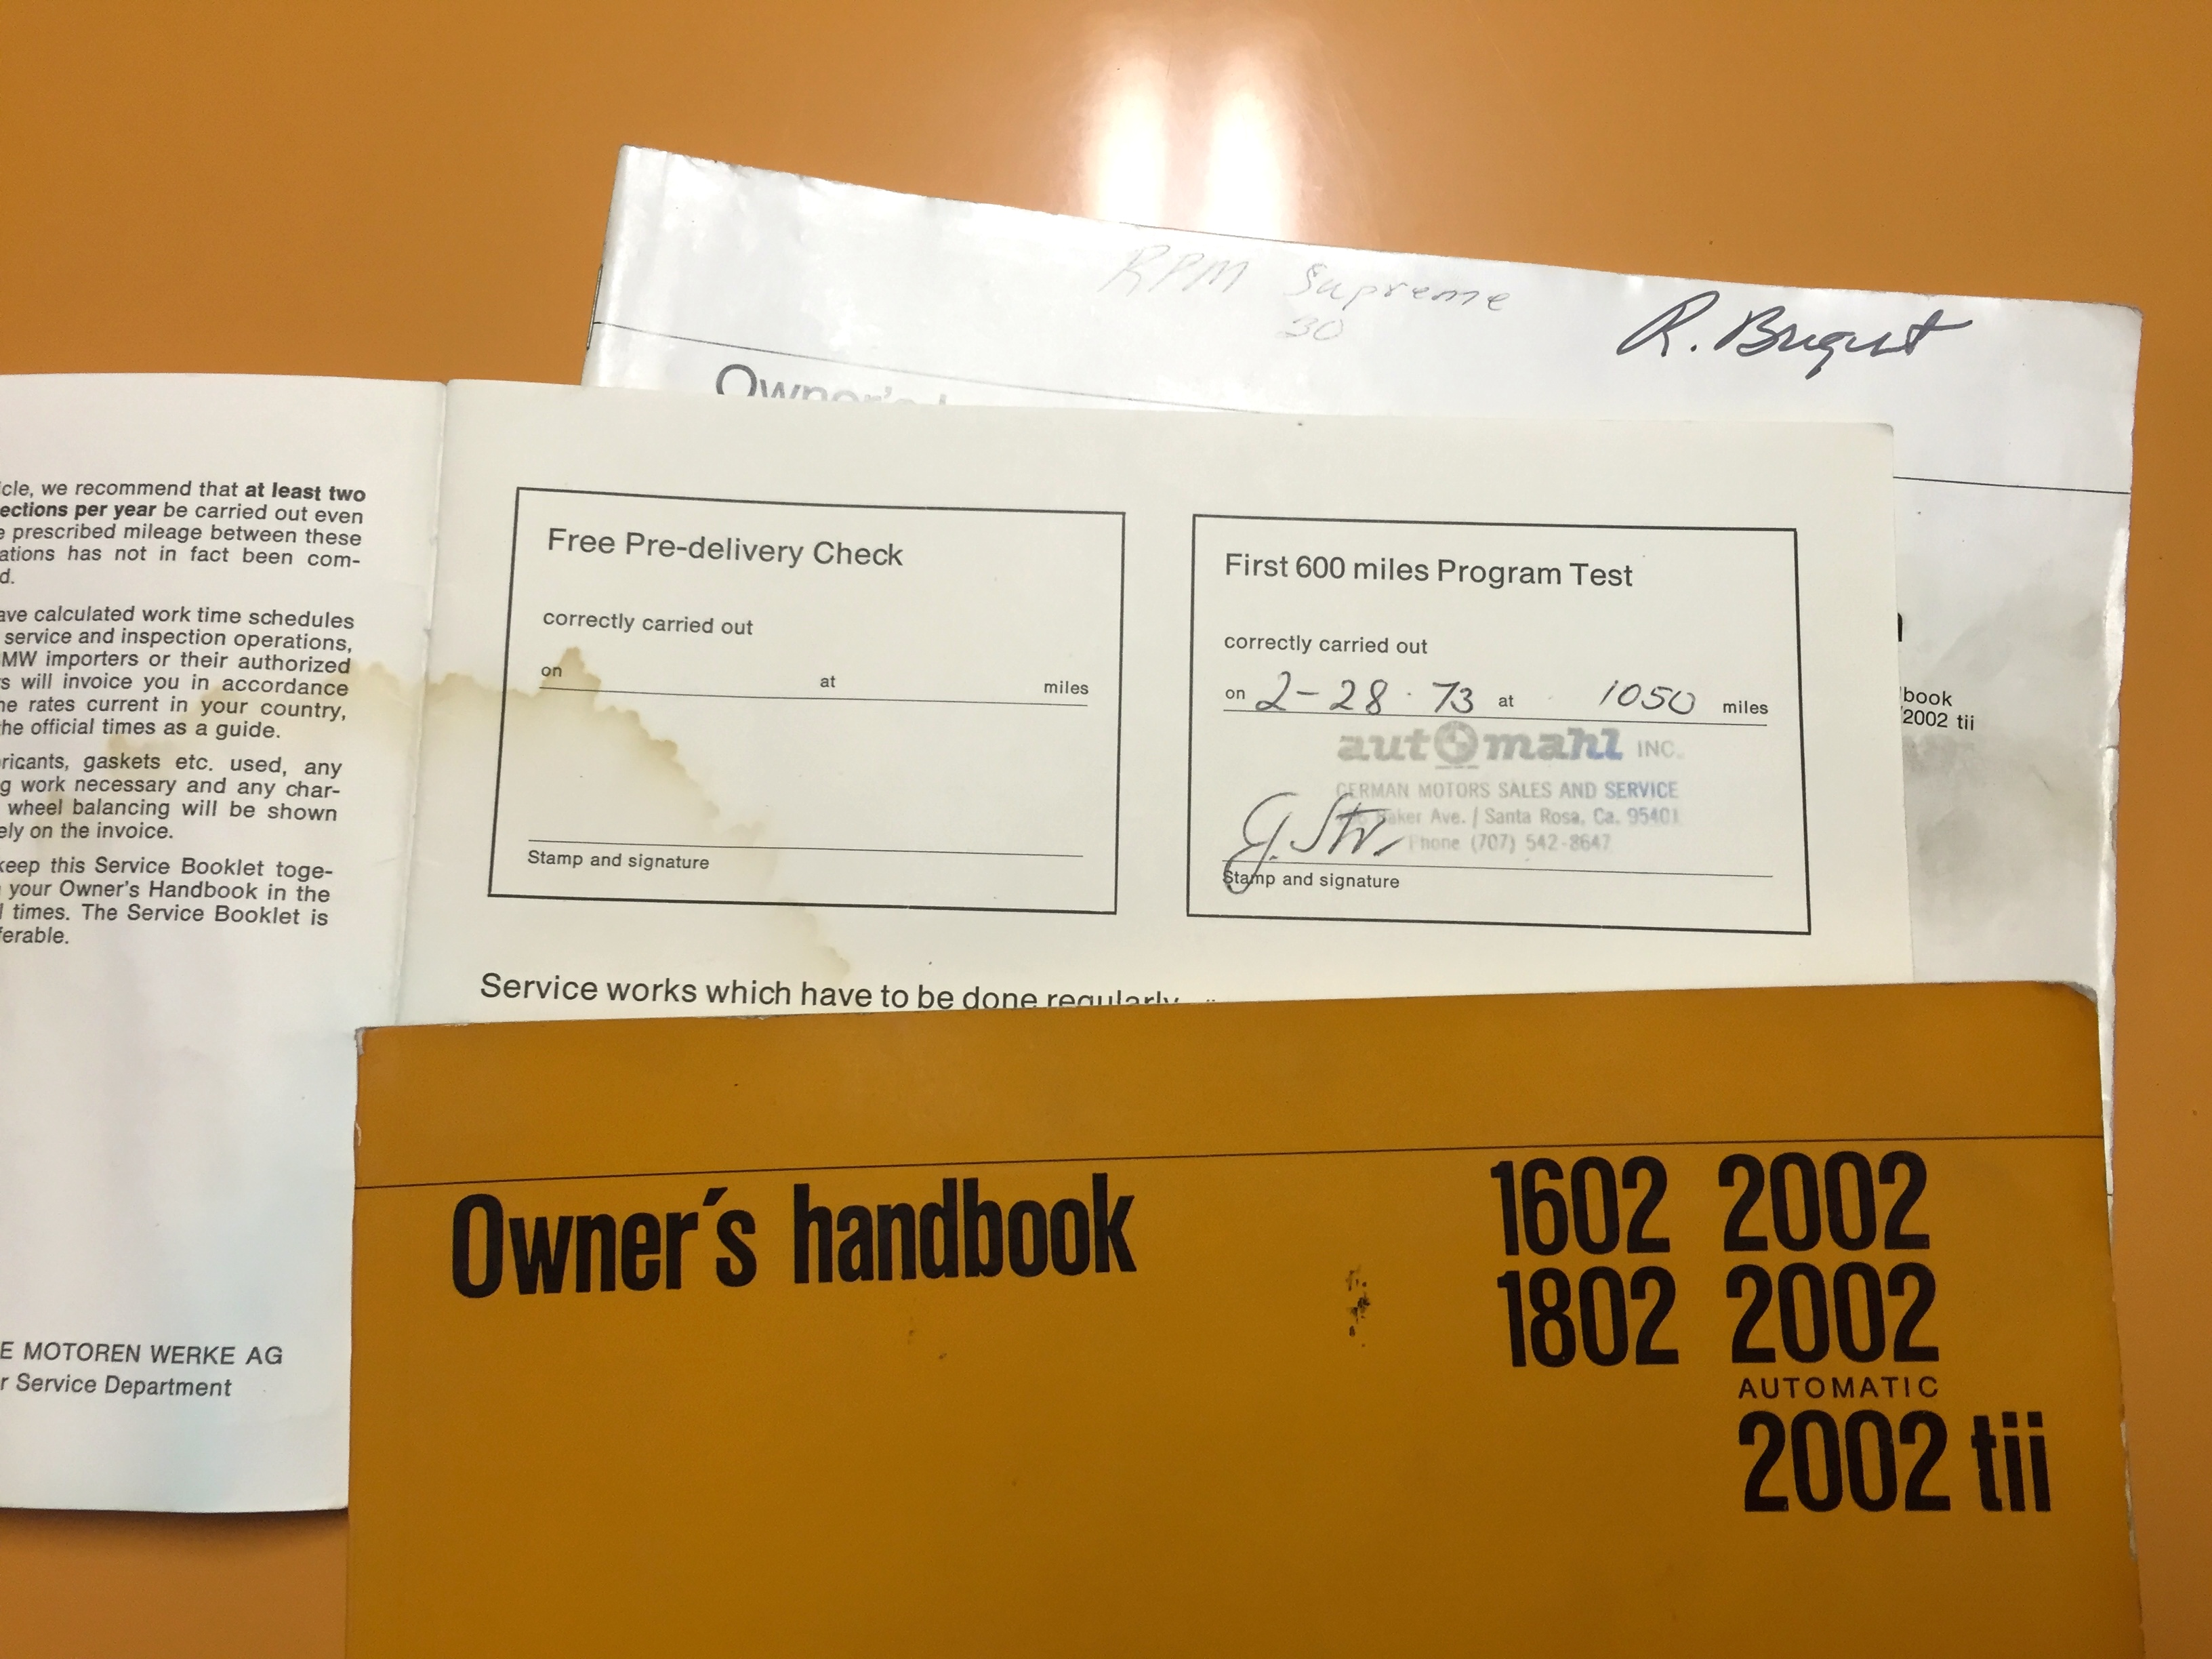 2002 owners manual history and reference bmw 2002 faq.